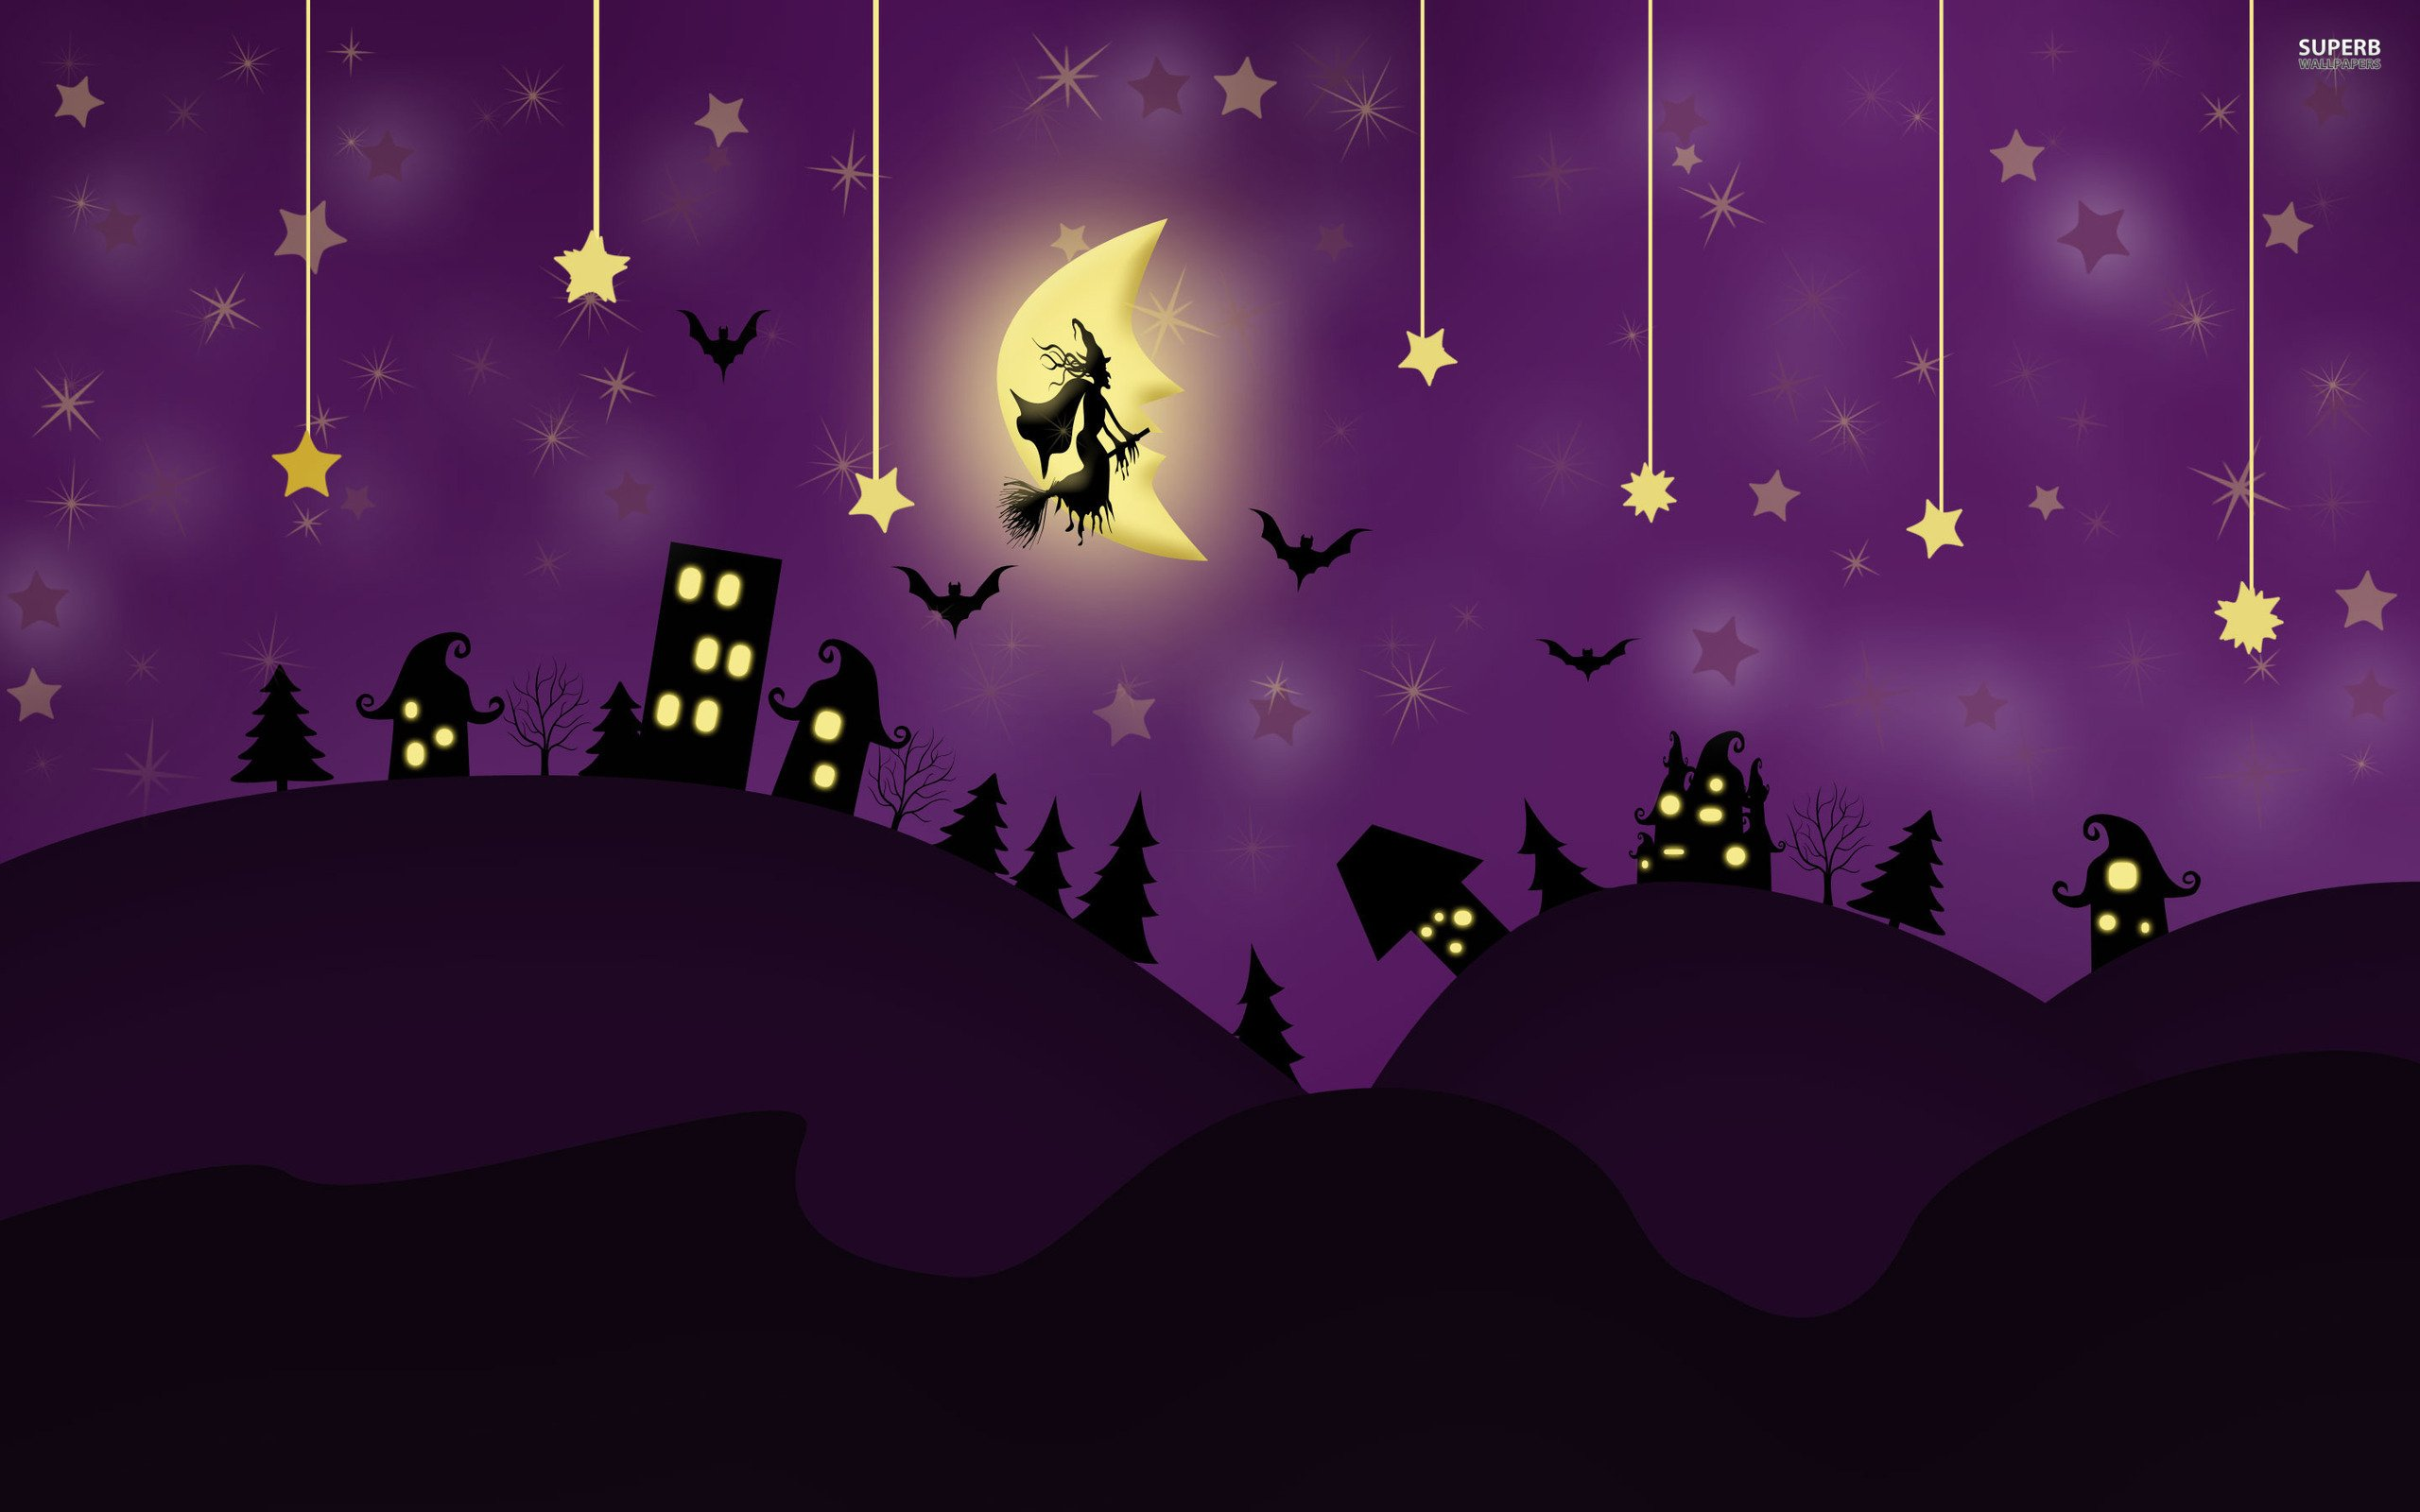 Free Download Halloween Ru Wallpapers Hd Desktop And Mobile Backgrounds 2560x1600 For Your Desktop Mobile Tablet Explore 48 Purple Halloween Wallpapers Purple Halloween Wallpapers Halloween Wallpapers Background Halloween